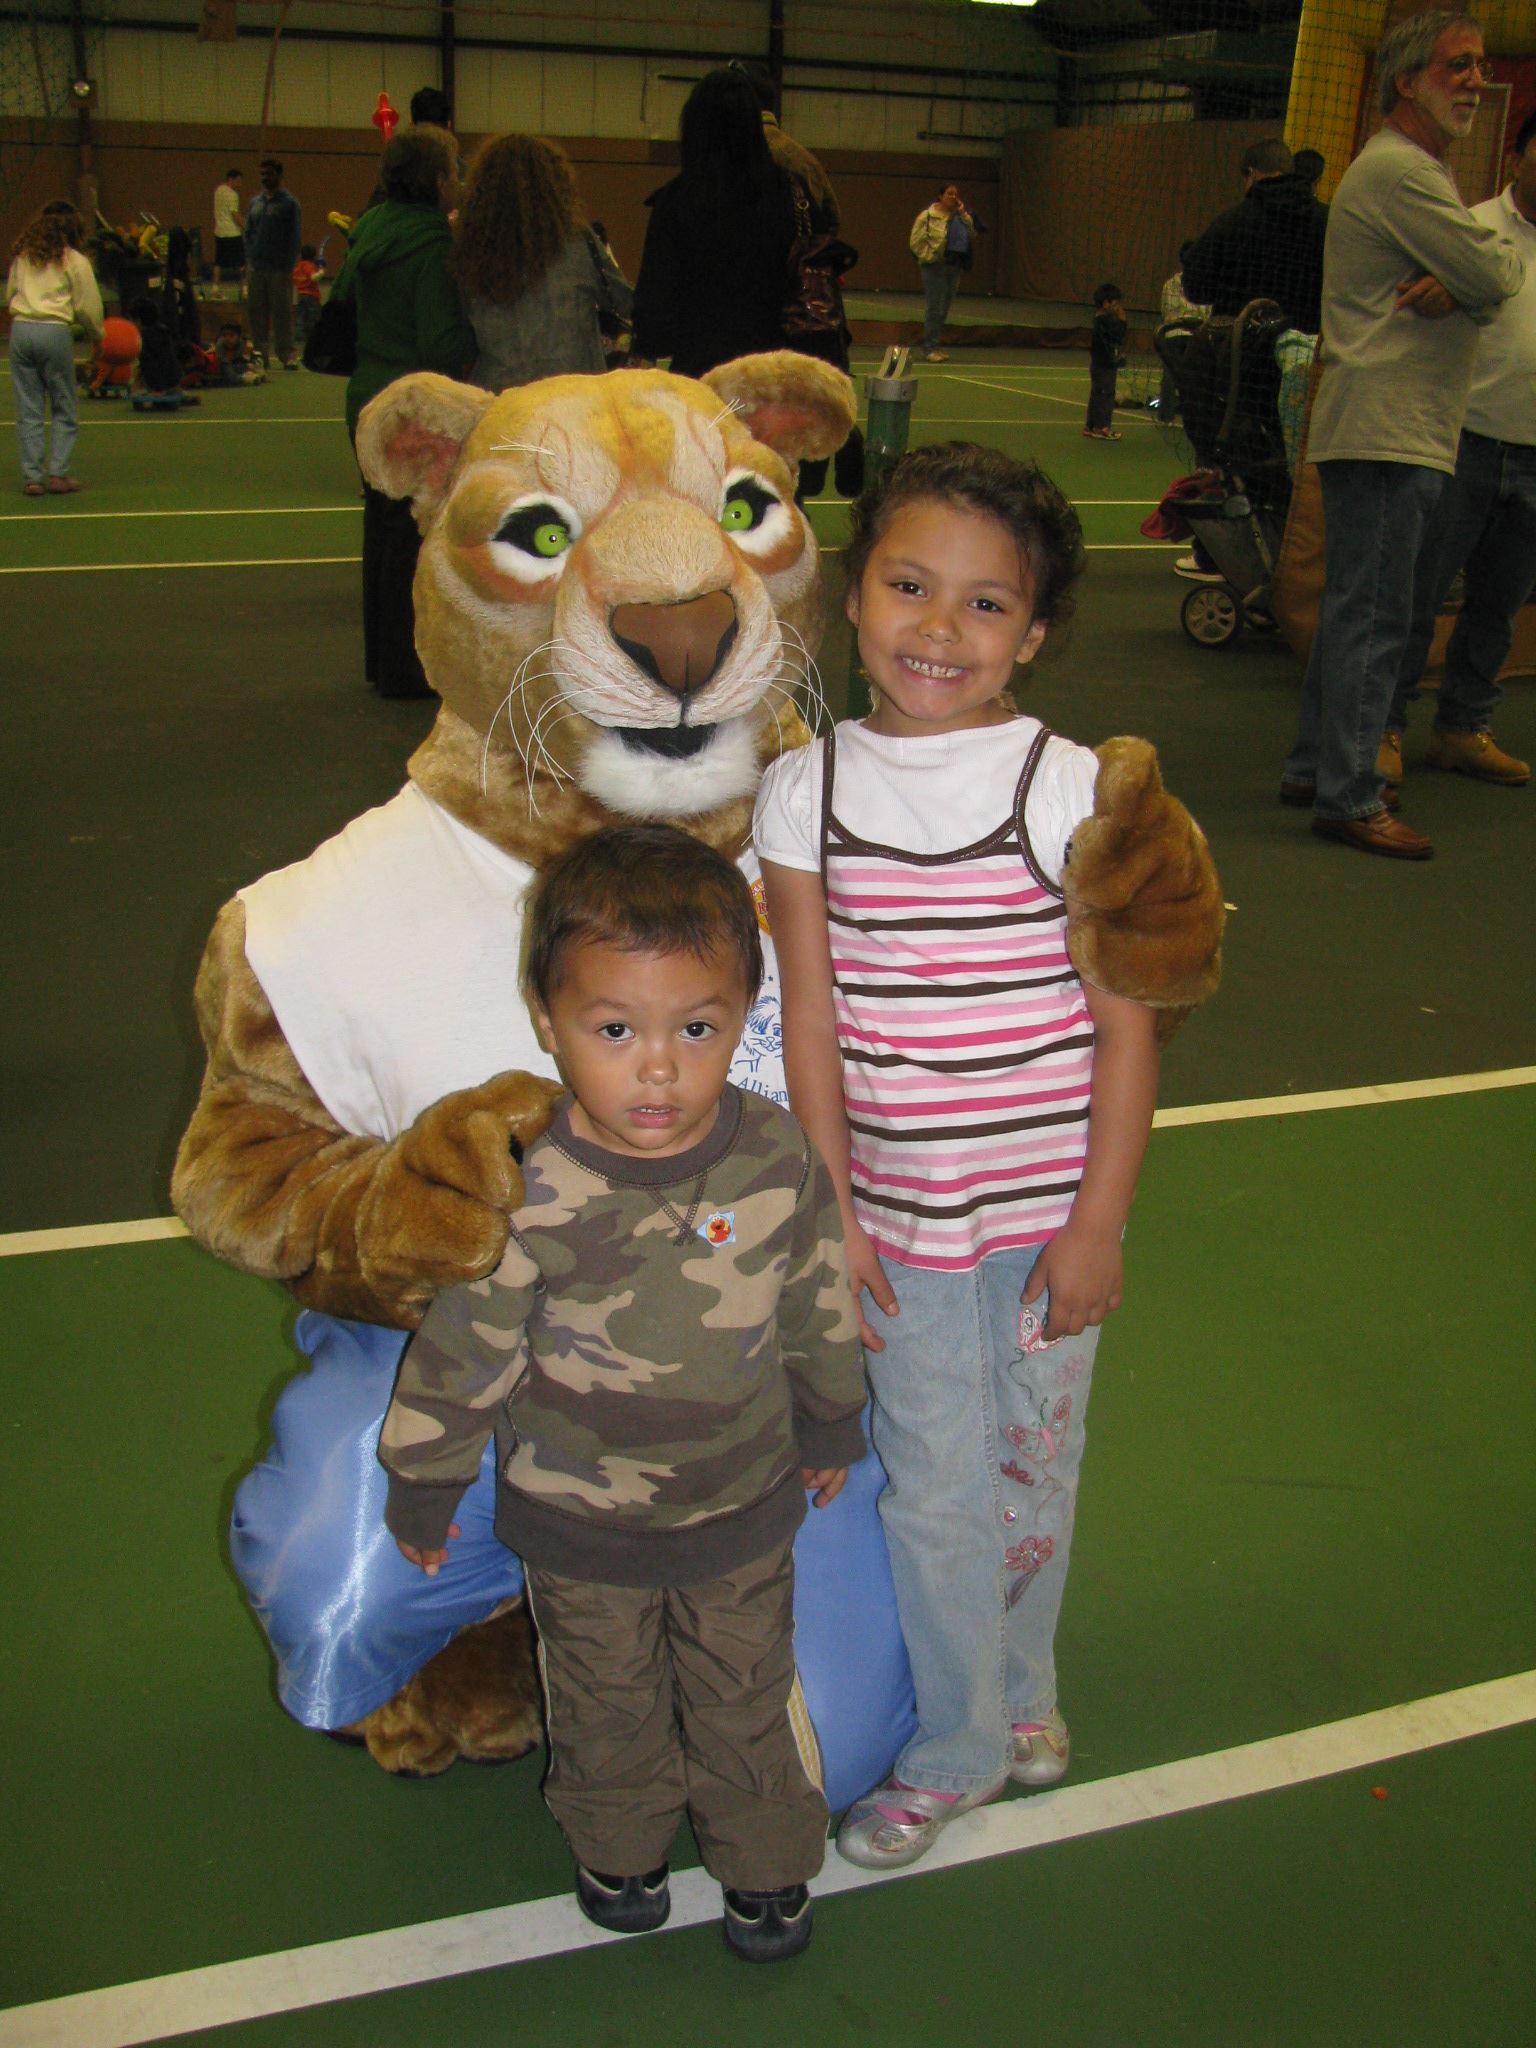 Children next to mascot